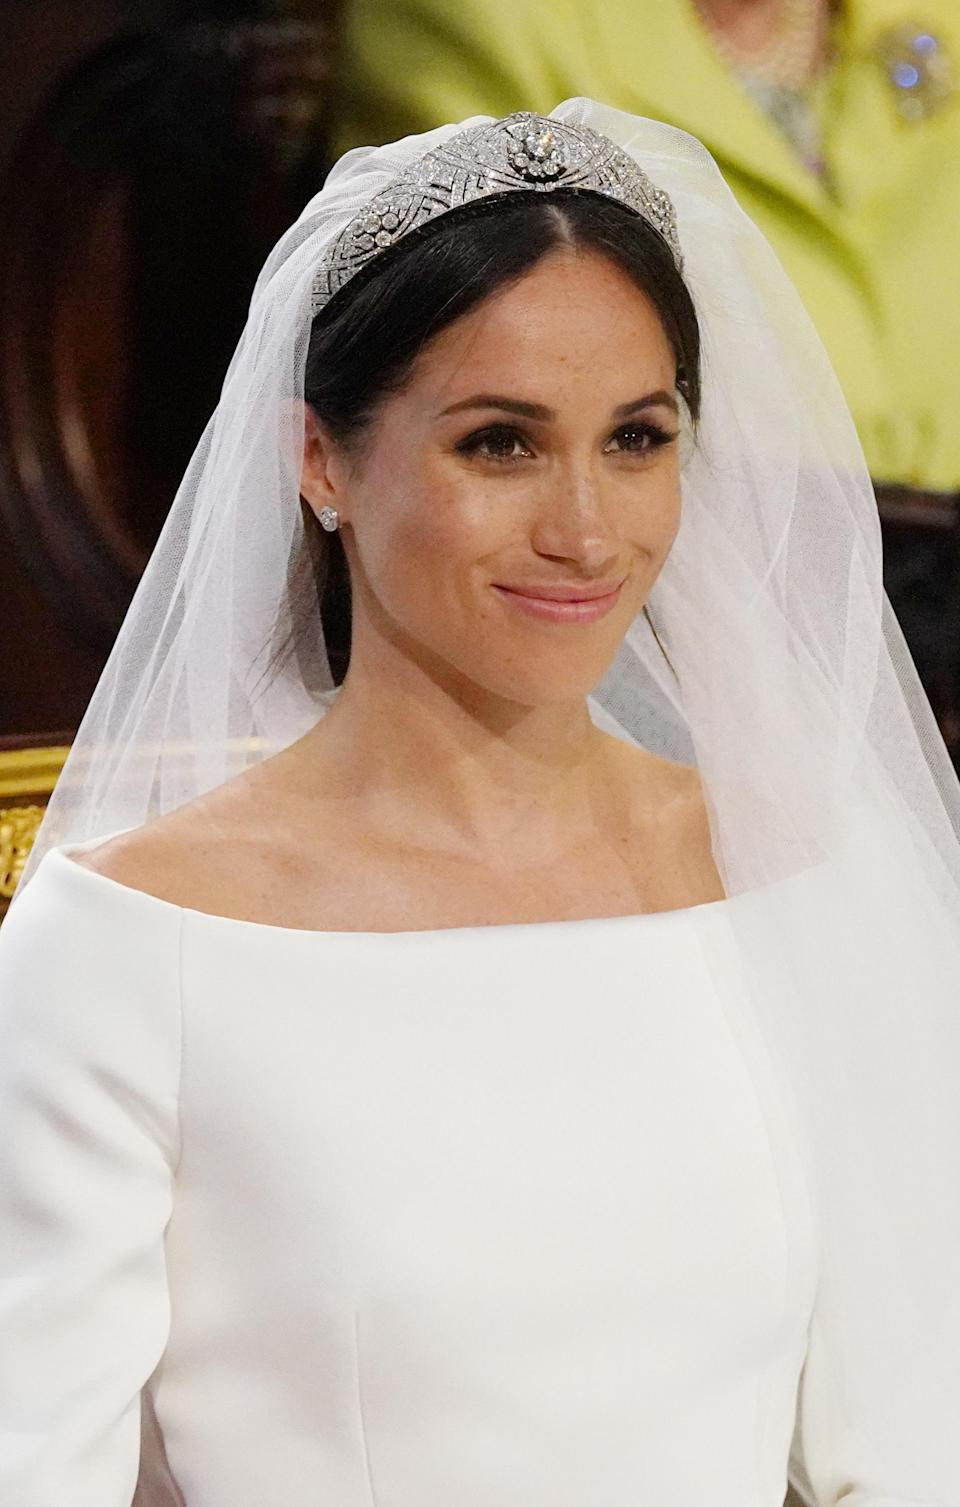 <p>Meghan Markle accessorized with earrings and a bracelet from Cartier. JONATHAN BRADY/AFP/Getty Images </p>